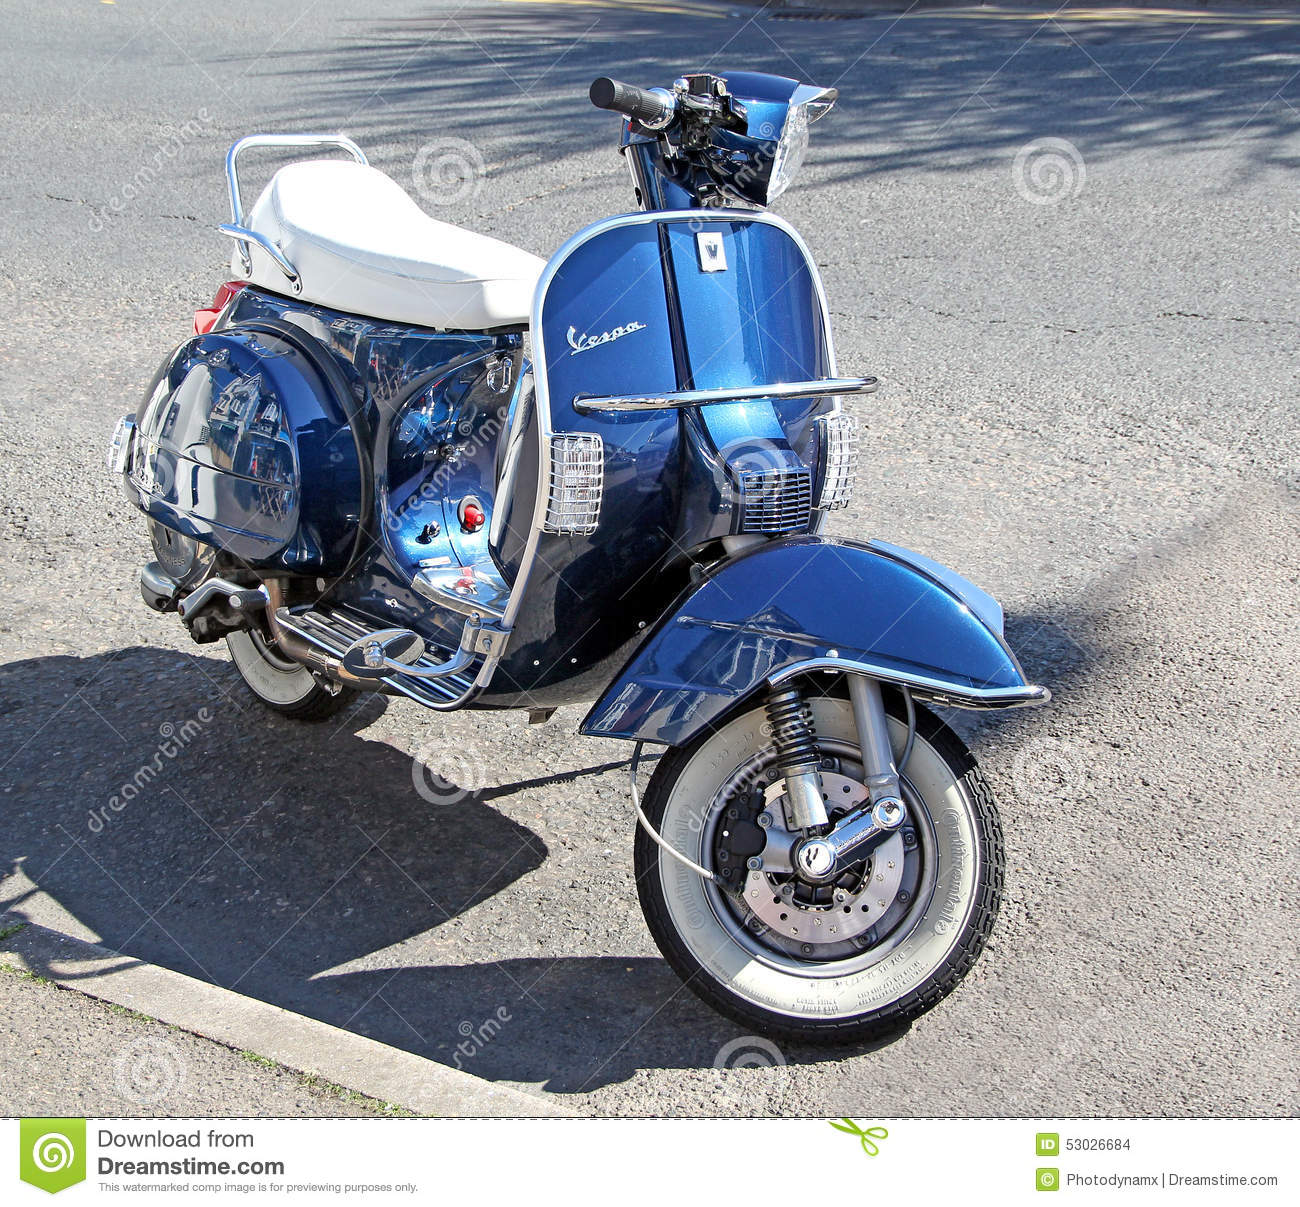 3 Wheeled Motorcycles >> Vespa motorcycle scooter editorial stock image. Image of transport - 53026684